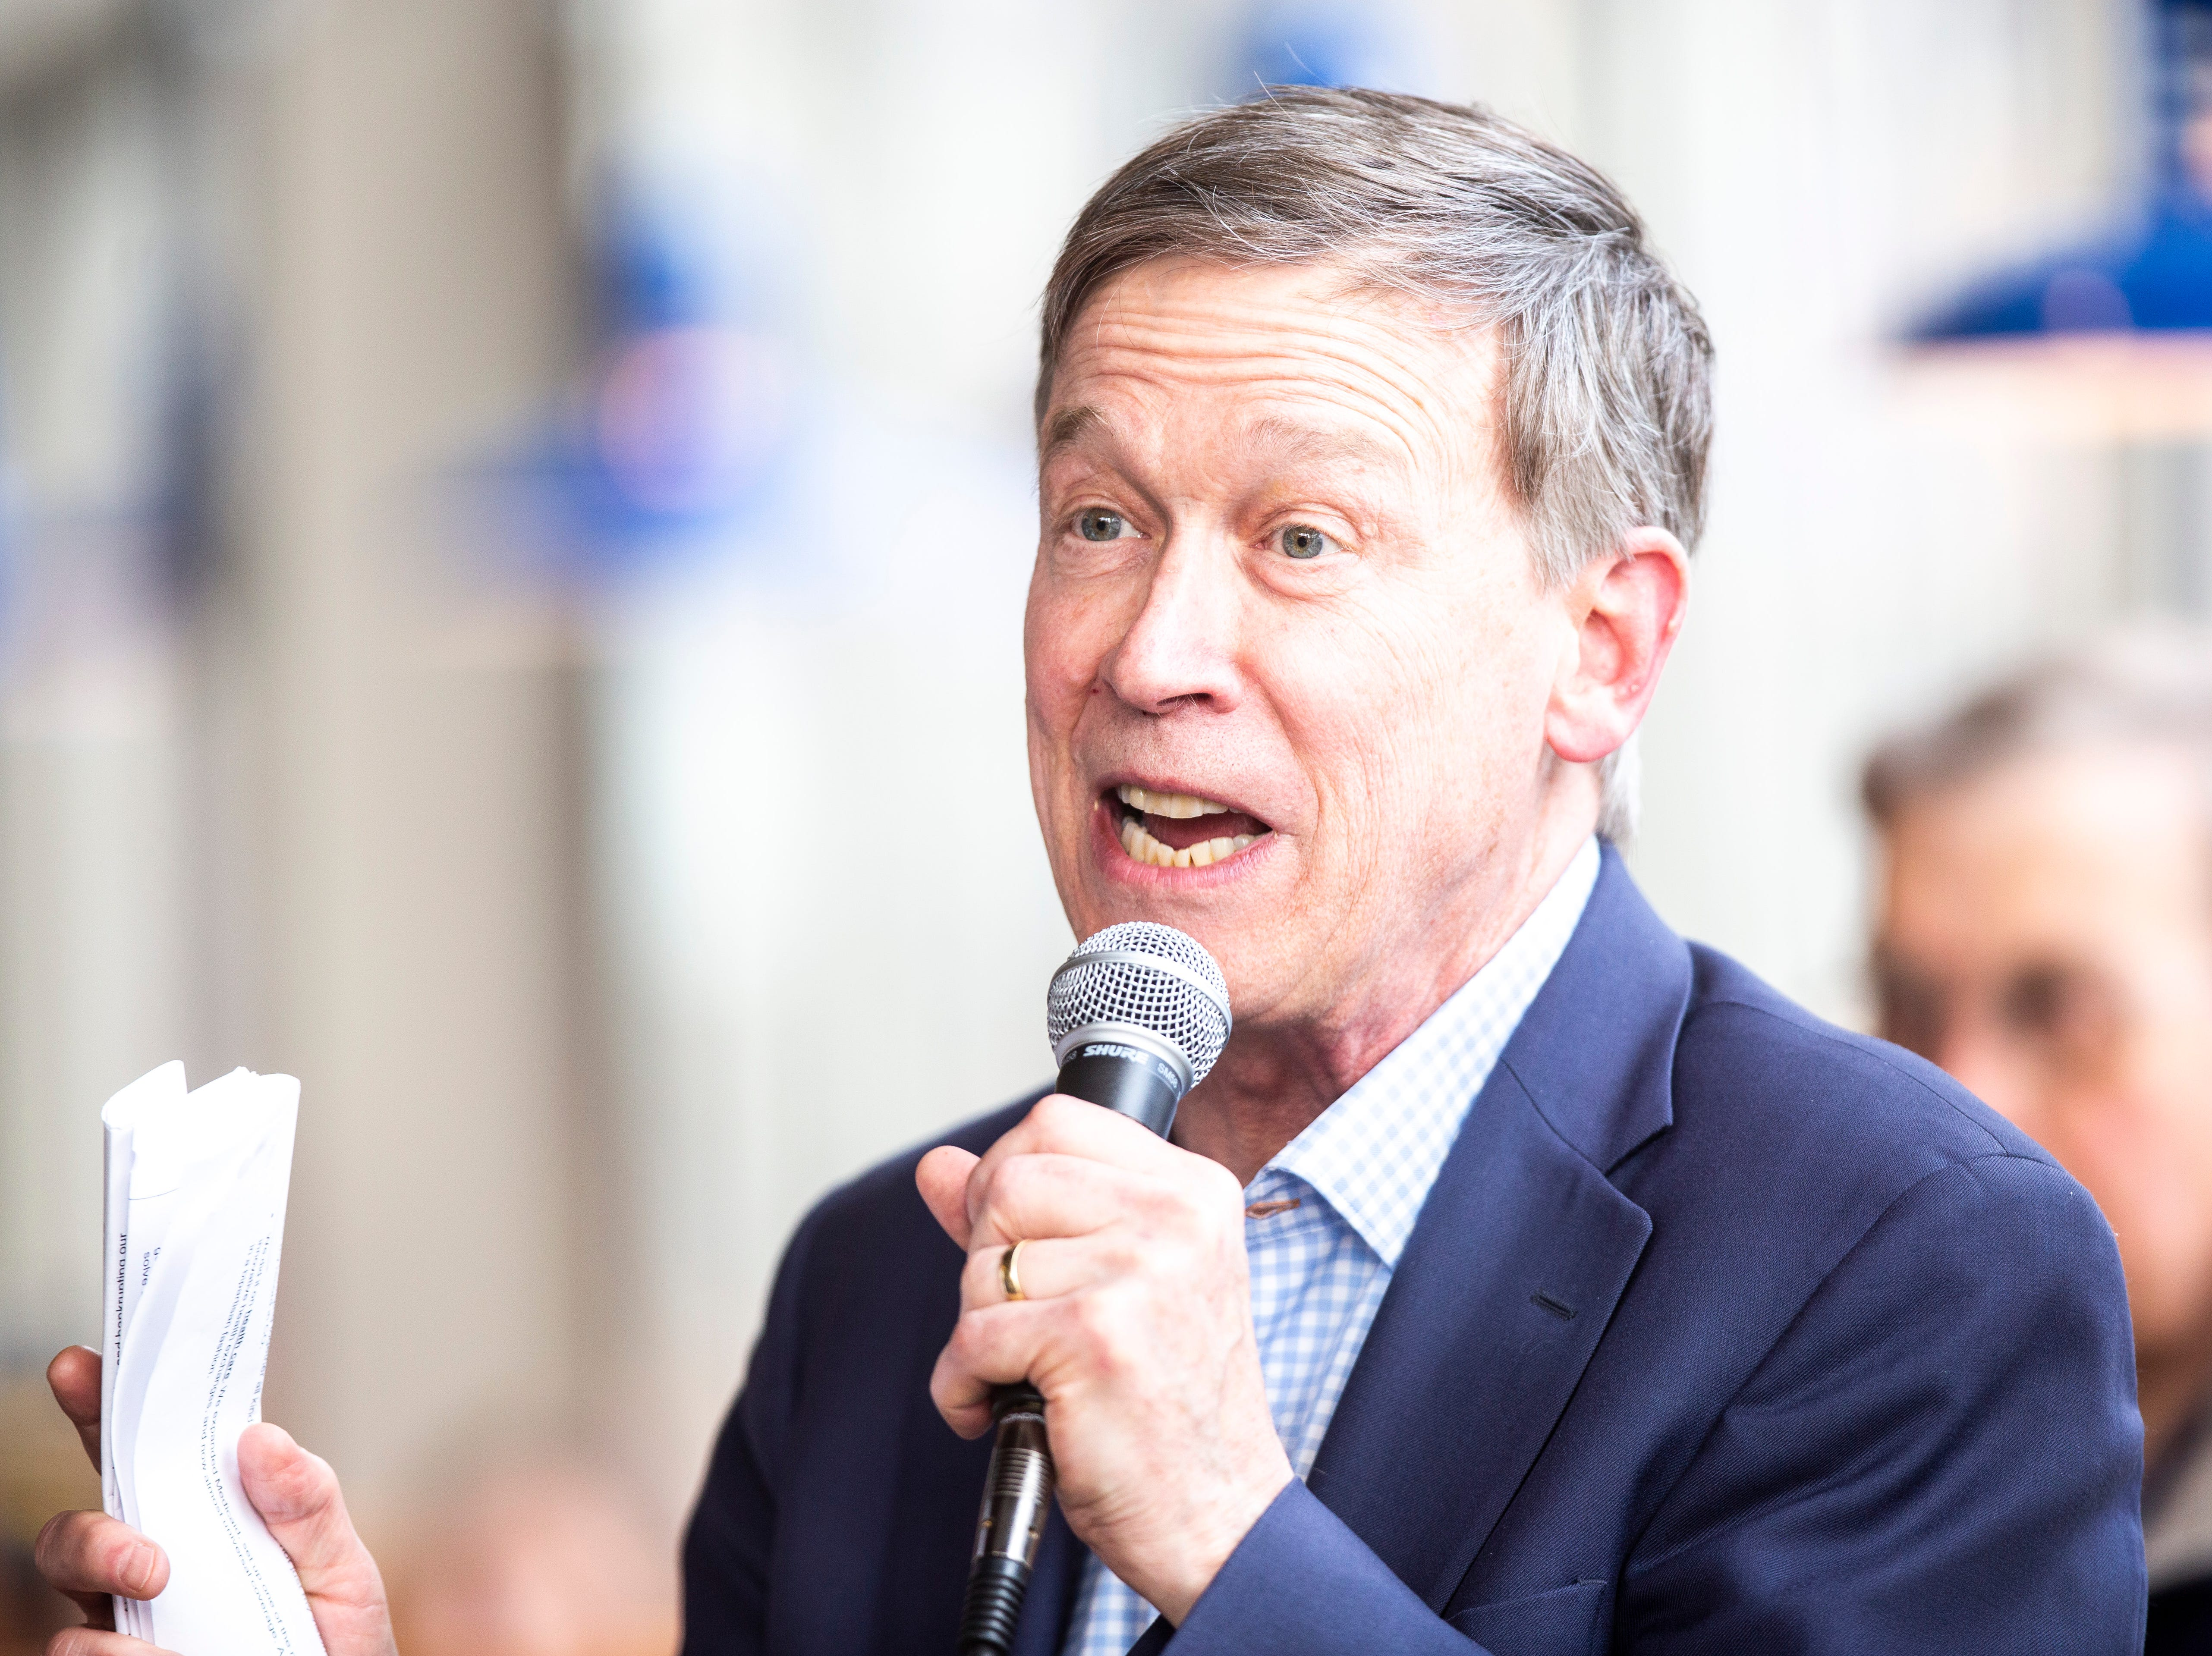 Democratic presidential candidate and former Colorado Gov. John Hickenlooper speaks during an event on Friday, April 12, 2019, at Backpocket Brewing in Coralville, Iowa.